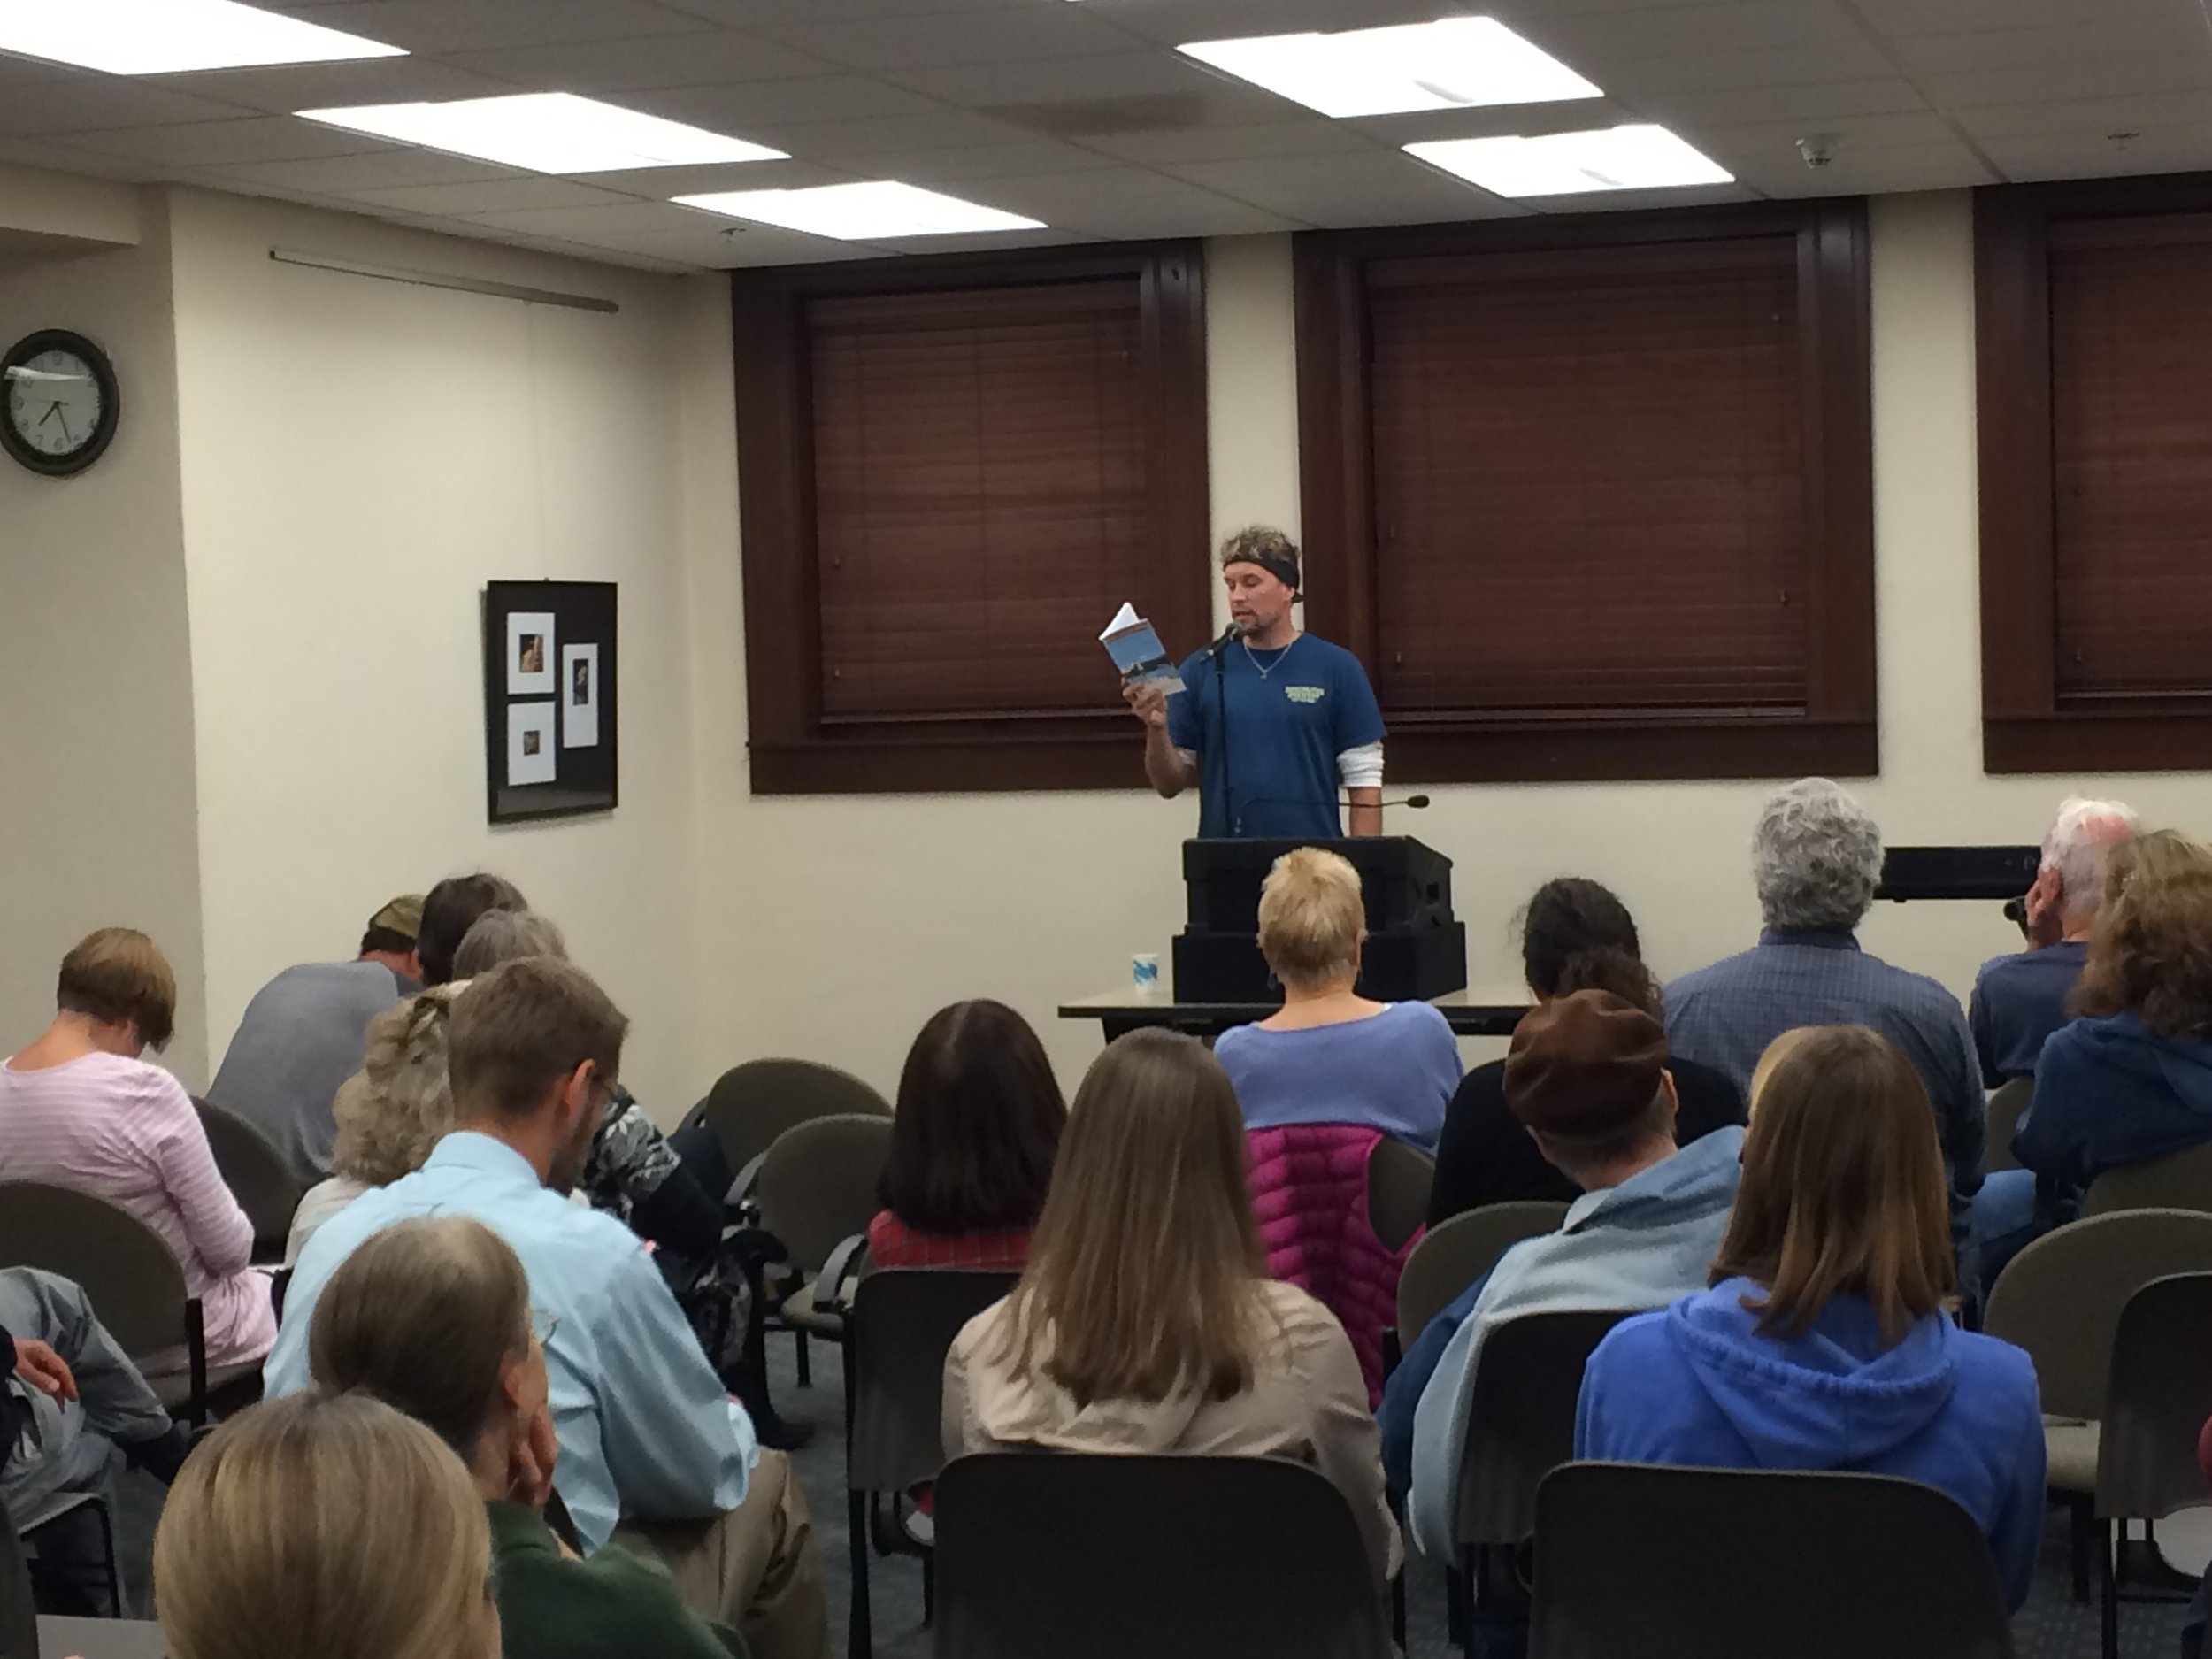 Jake speaking at the Ashland Public Library in Oregon